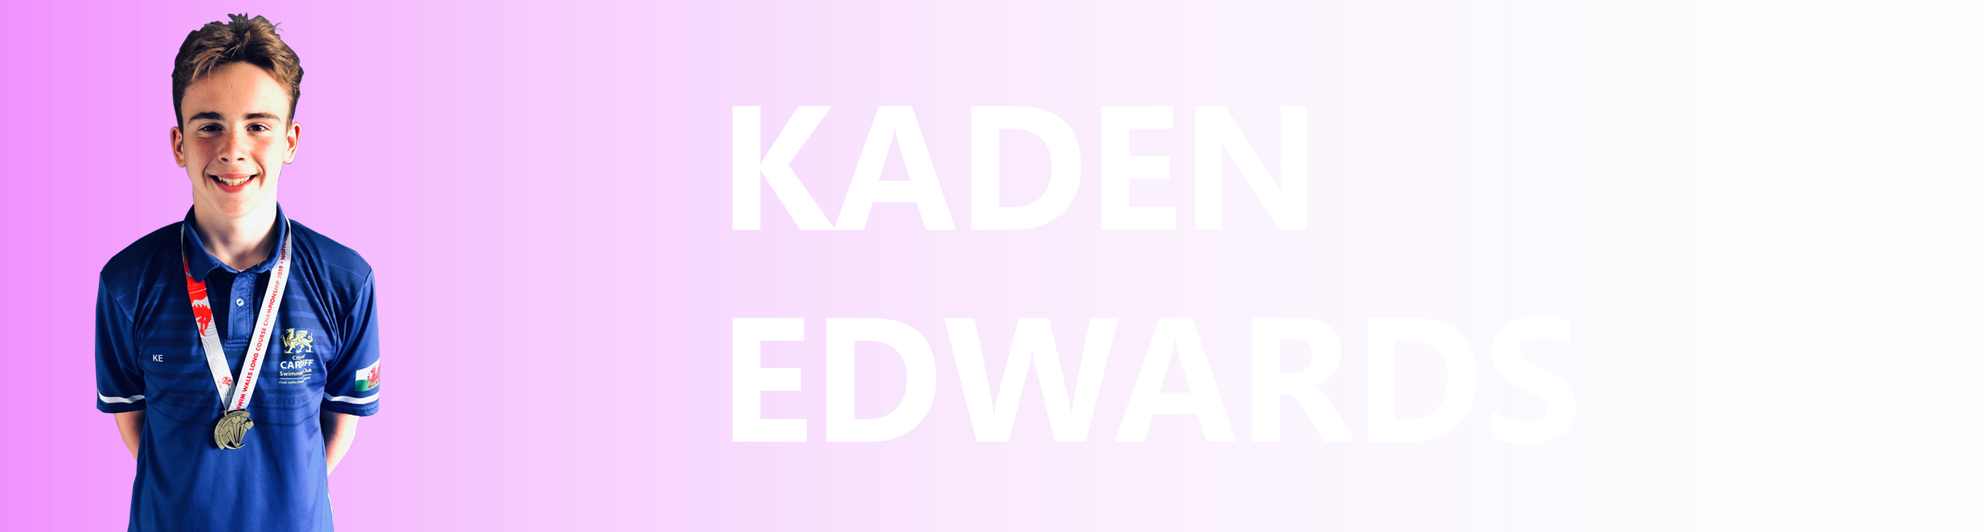 Kaden Edwards SwimPath Team Profile Page